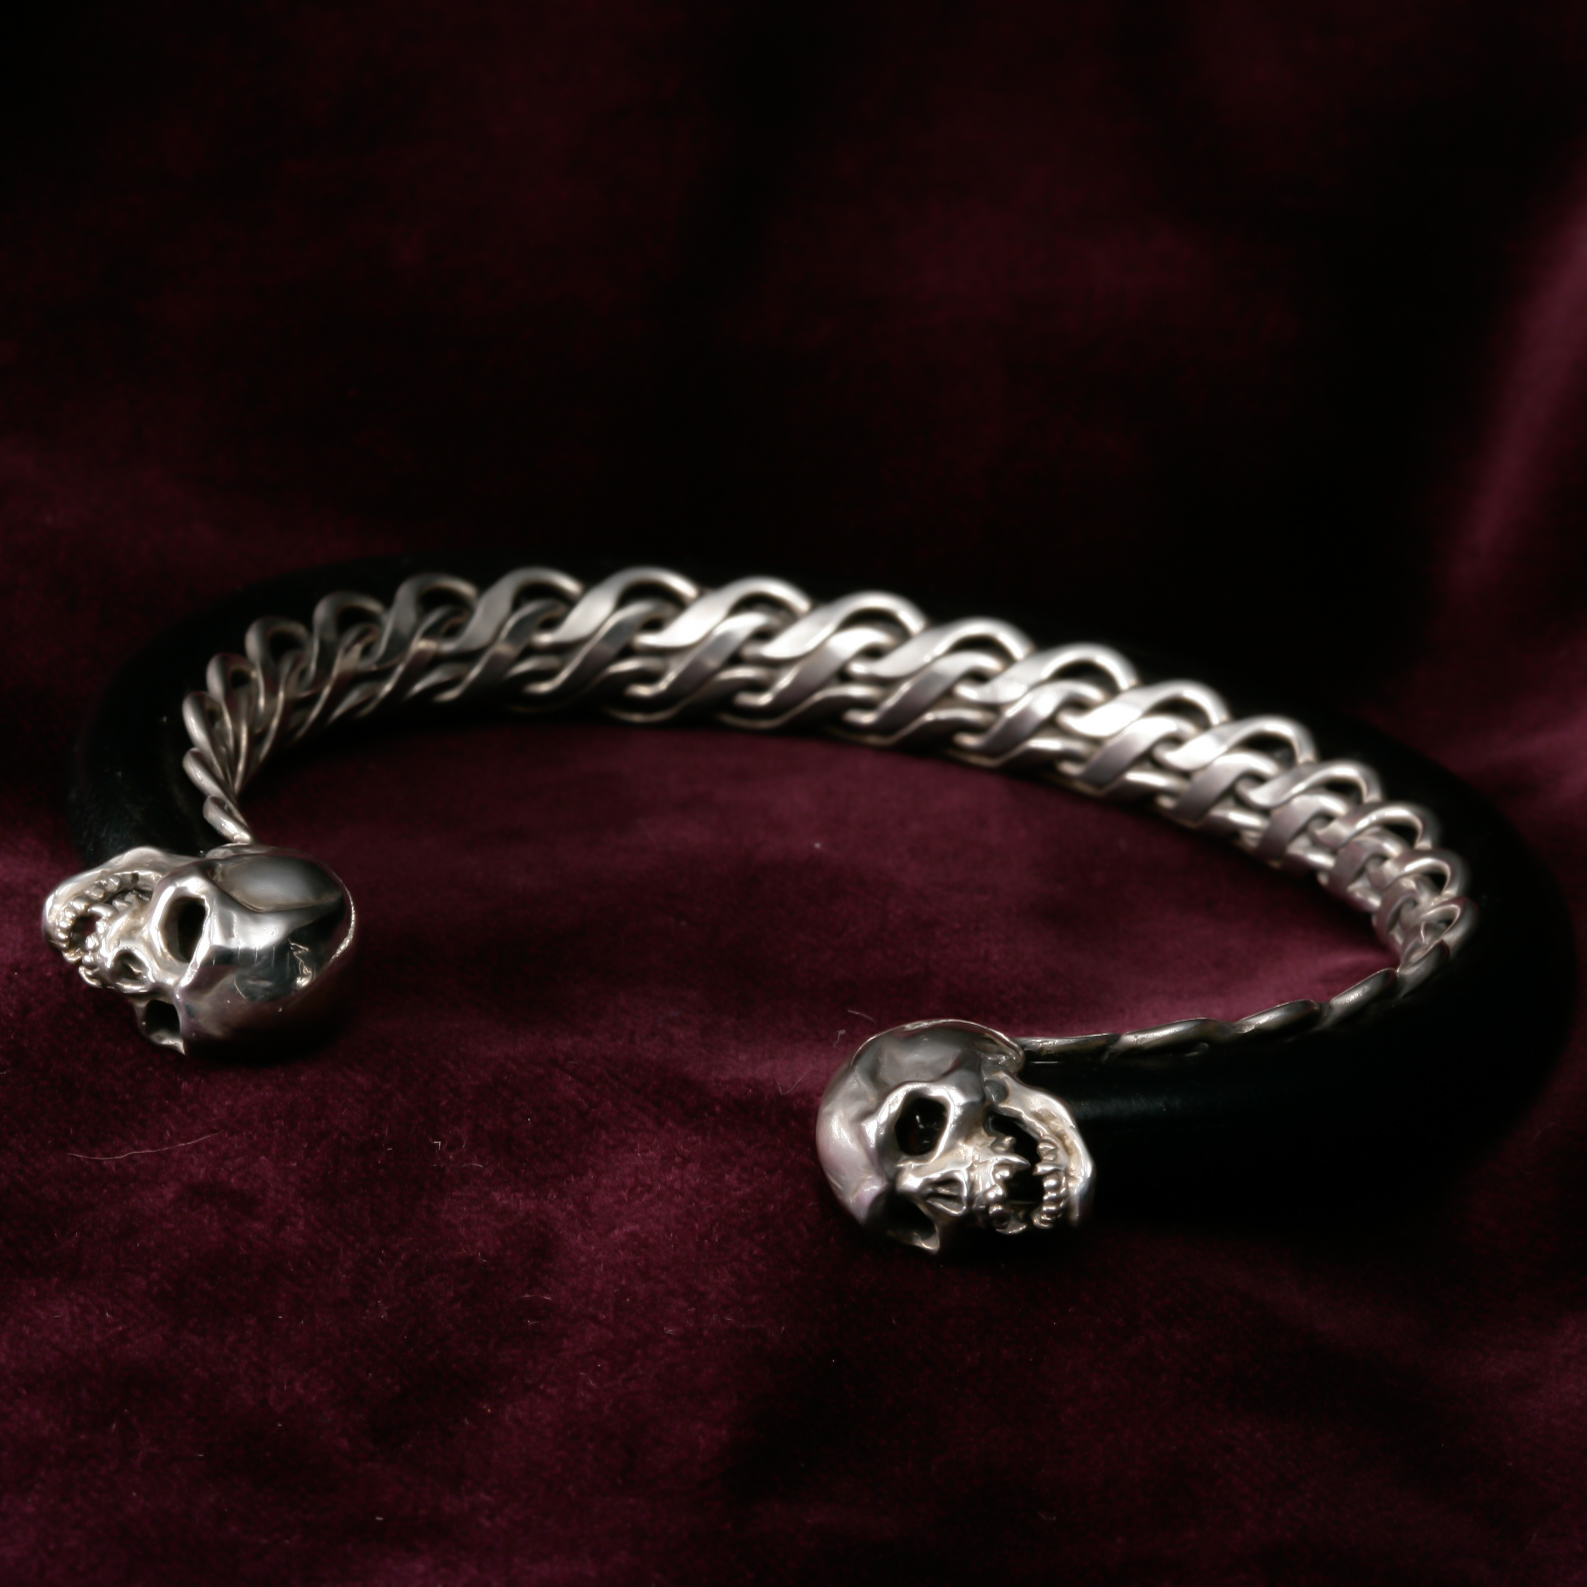 SkullSnake Bangle with Rod-Shaped Leather